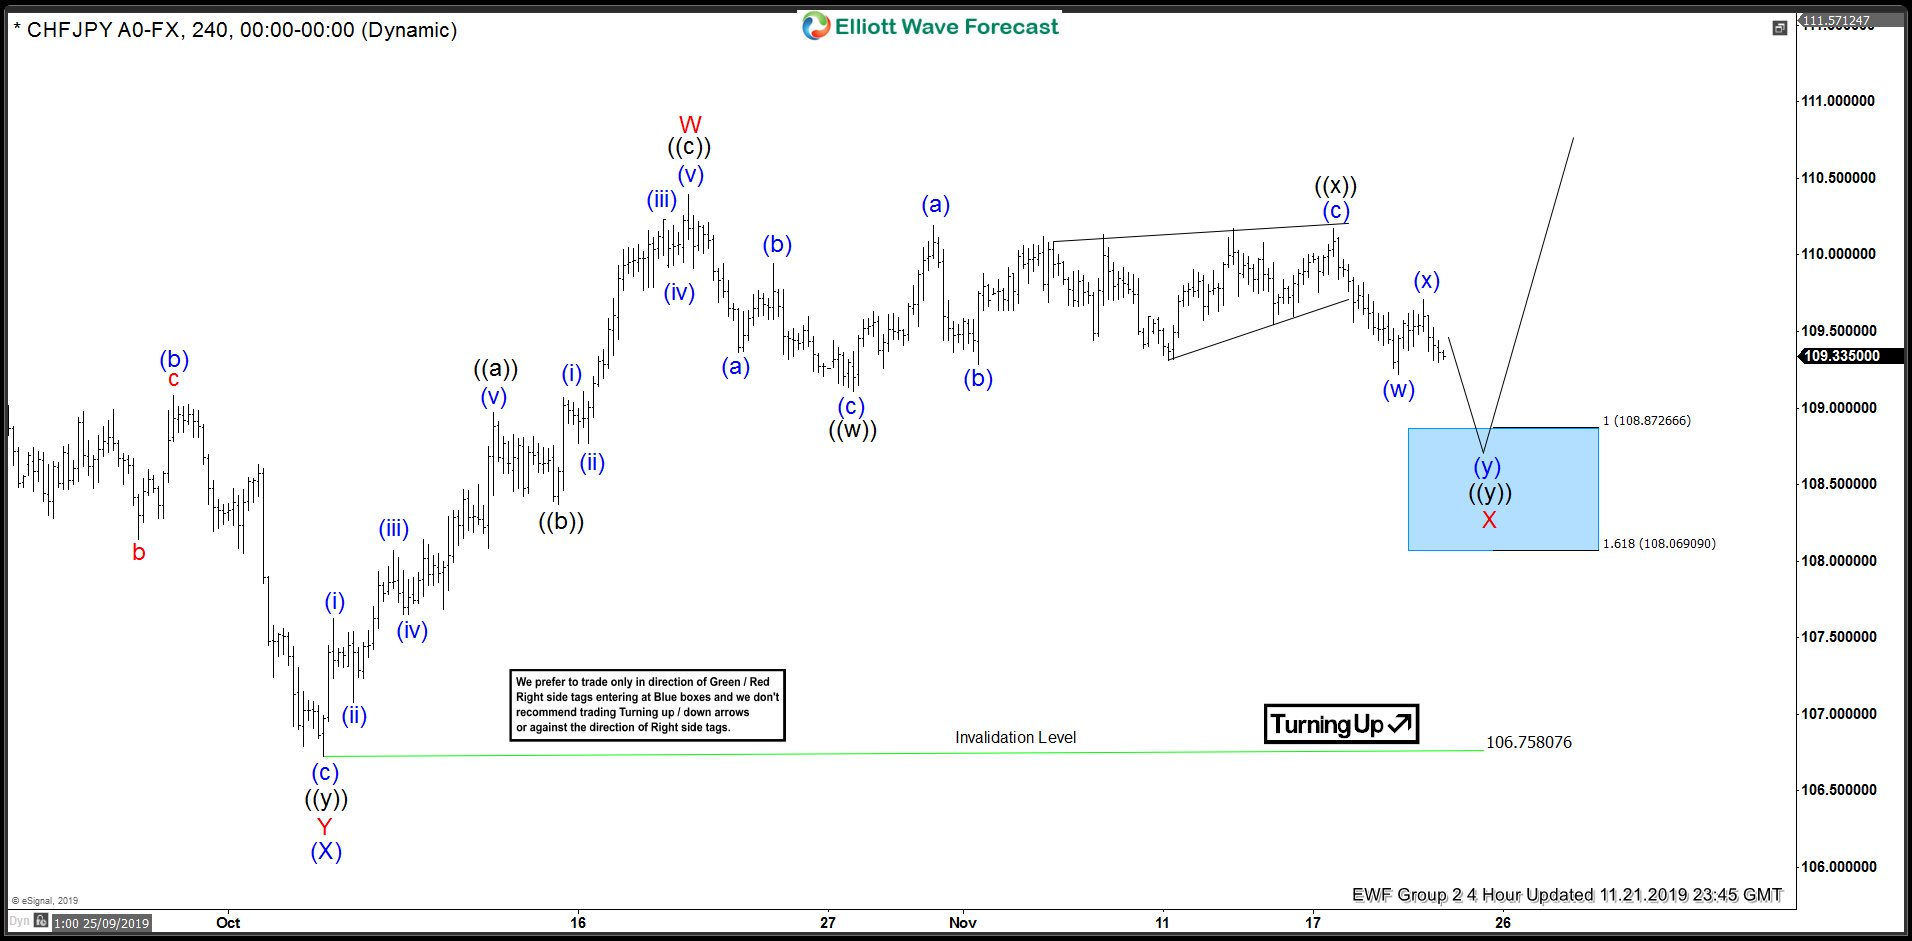 CHFJPY 21 November 4 Hour Elliott Wave view